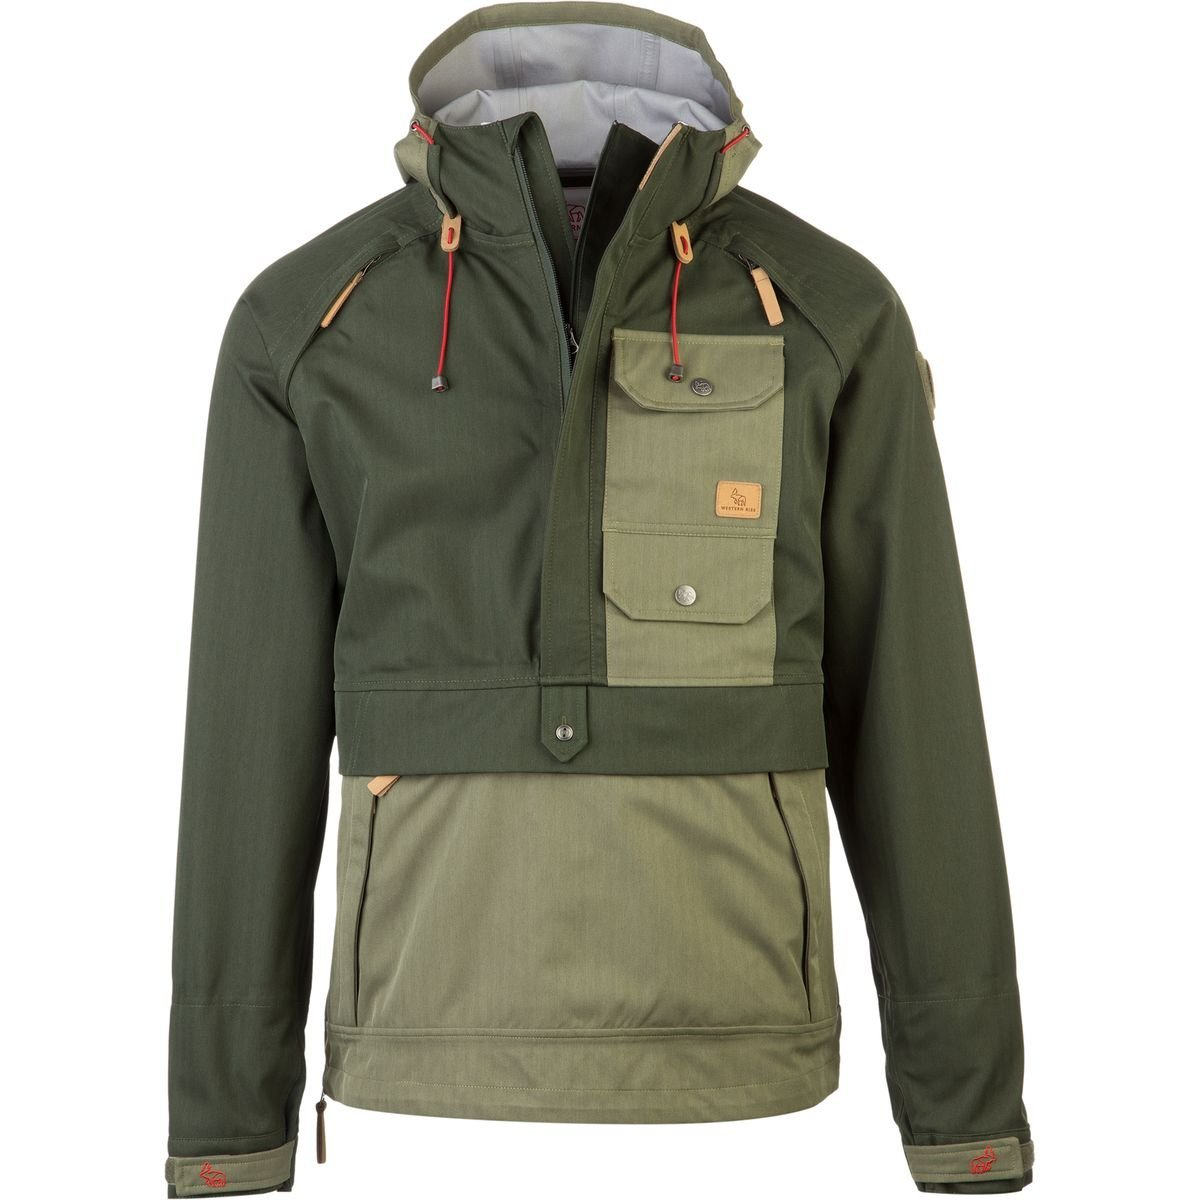 Western Rise Bitter Creek Anorak Jacket Front